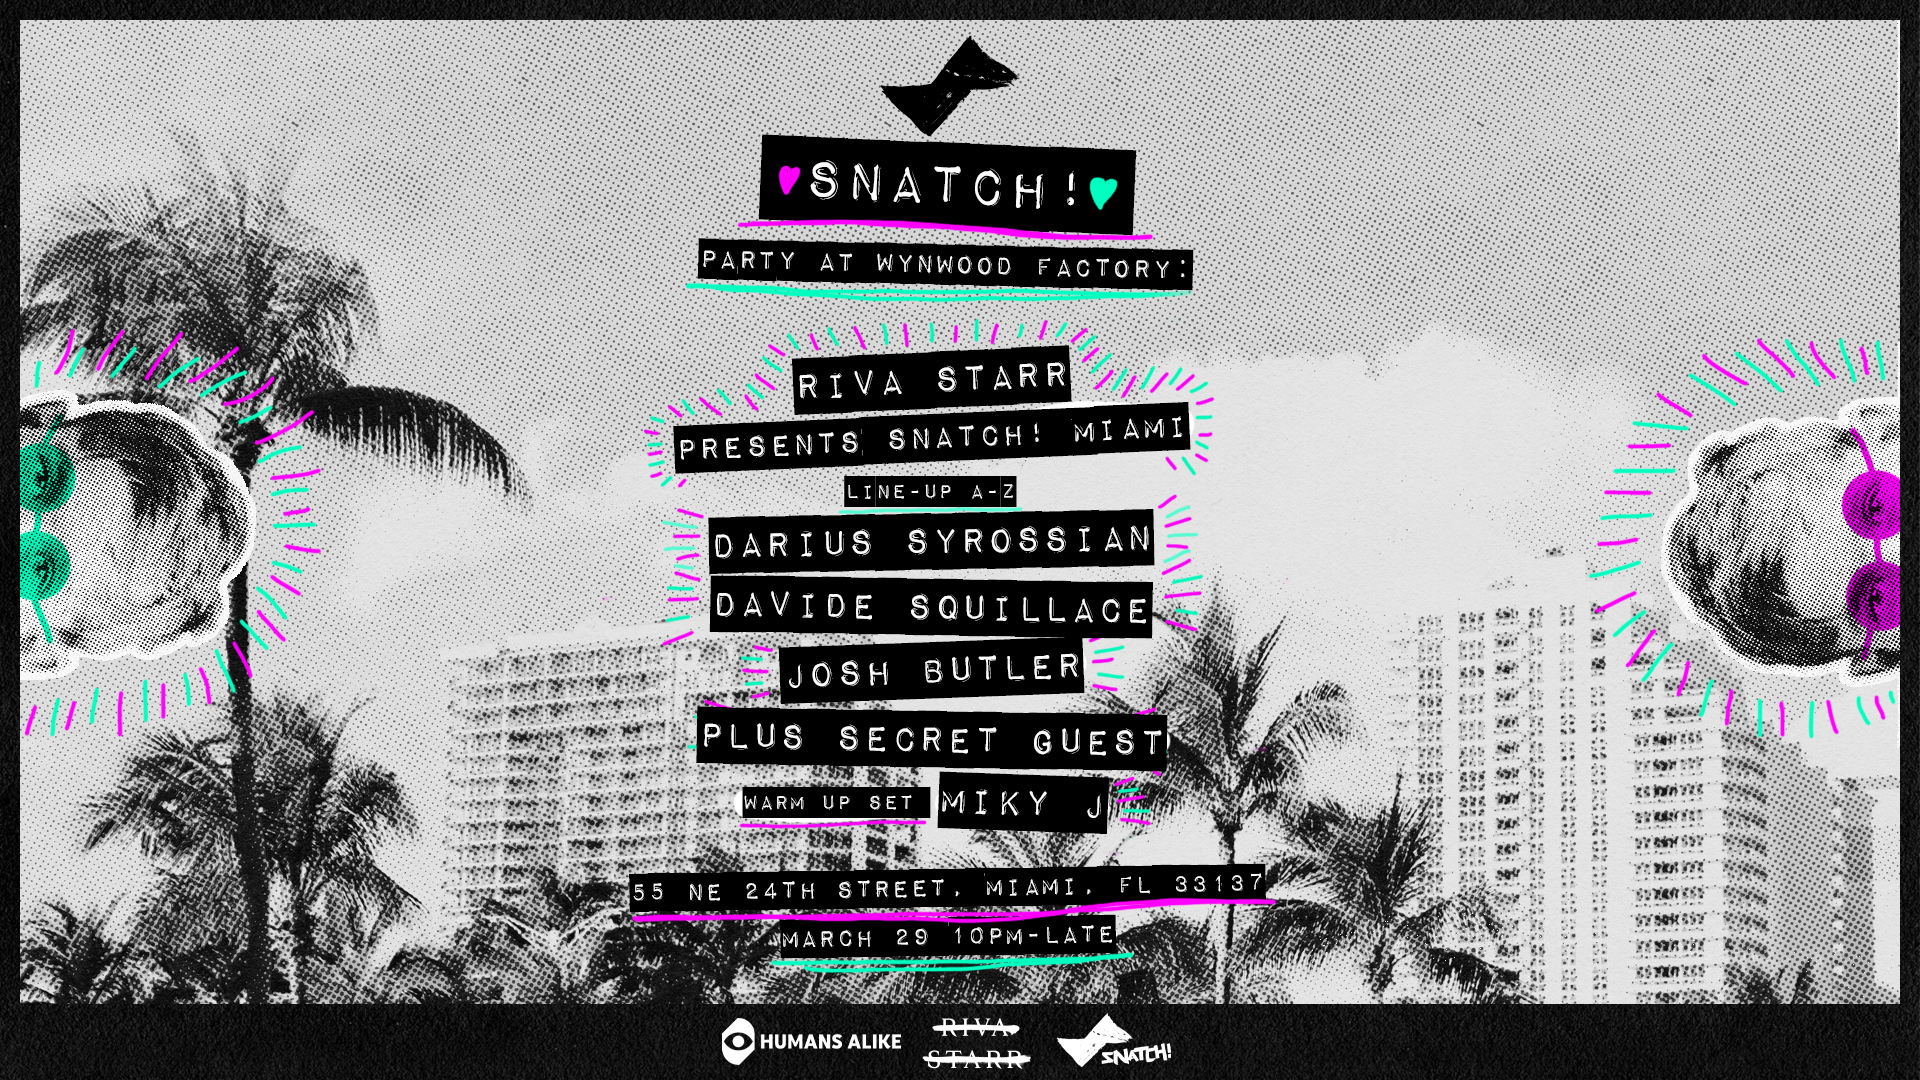 Riva Starr presents Snatch Miami (East Room) Image